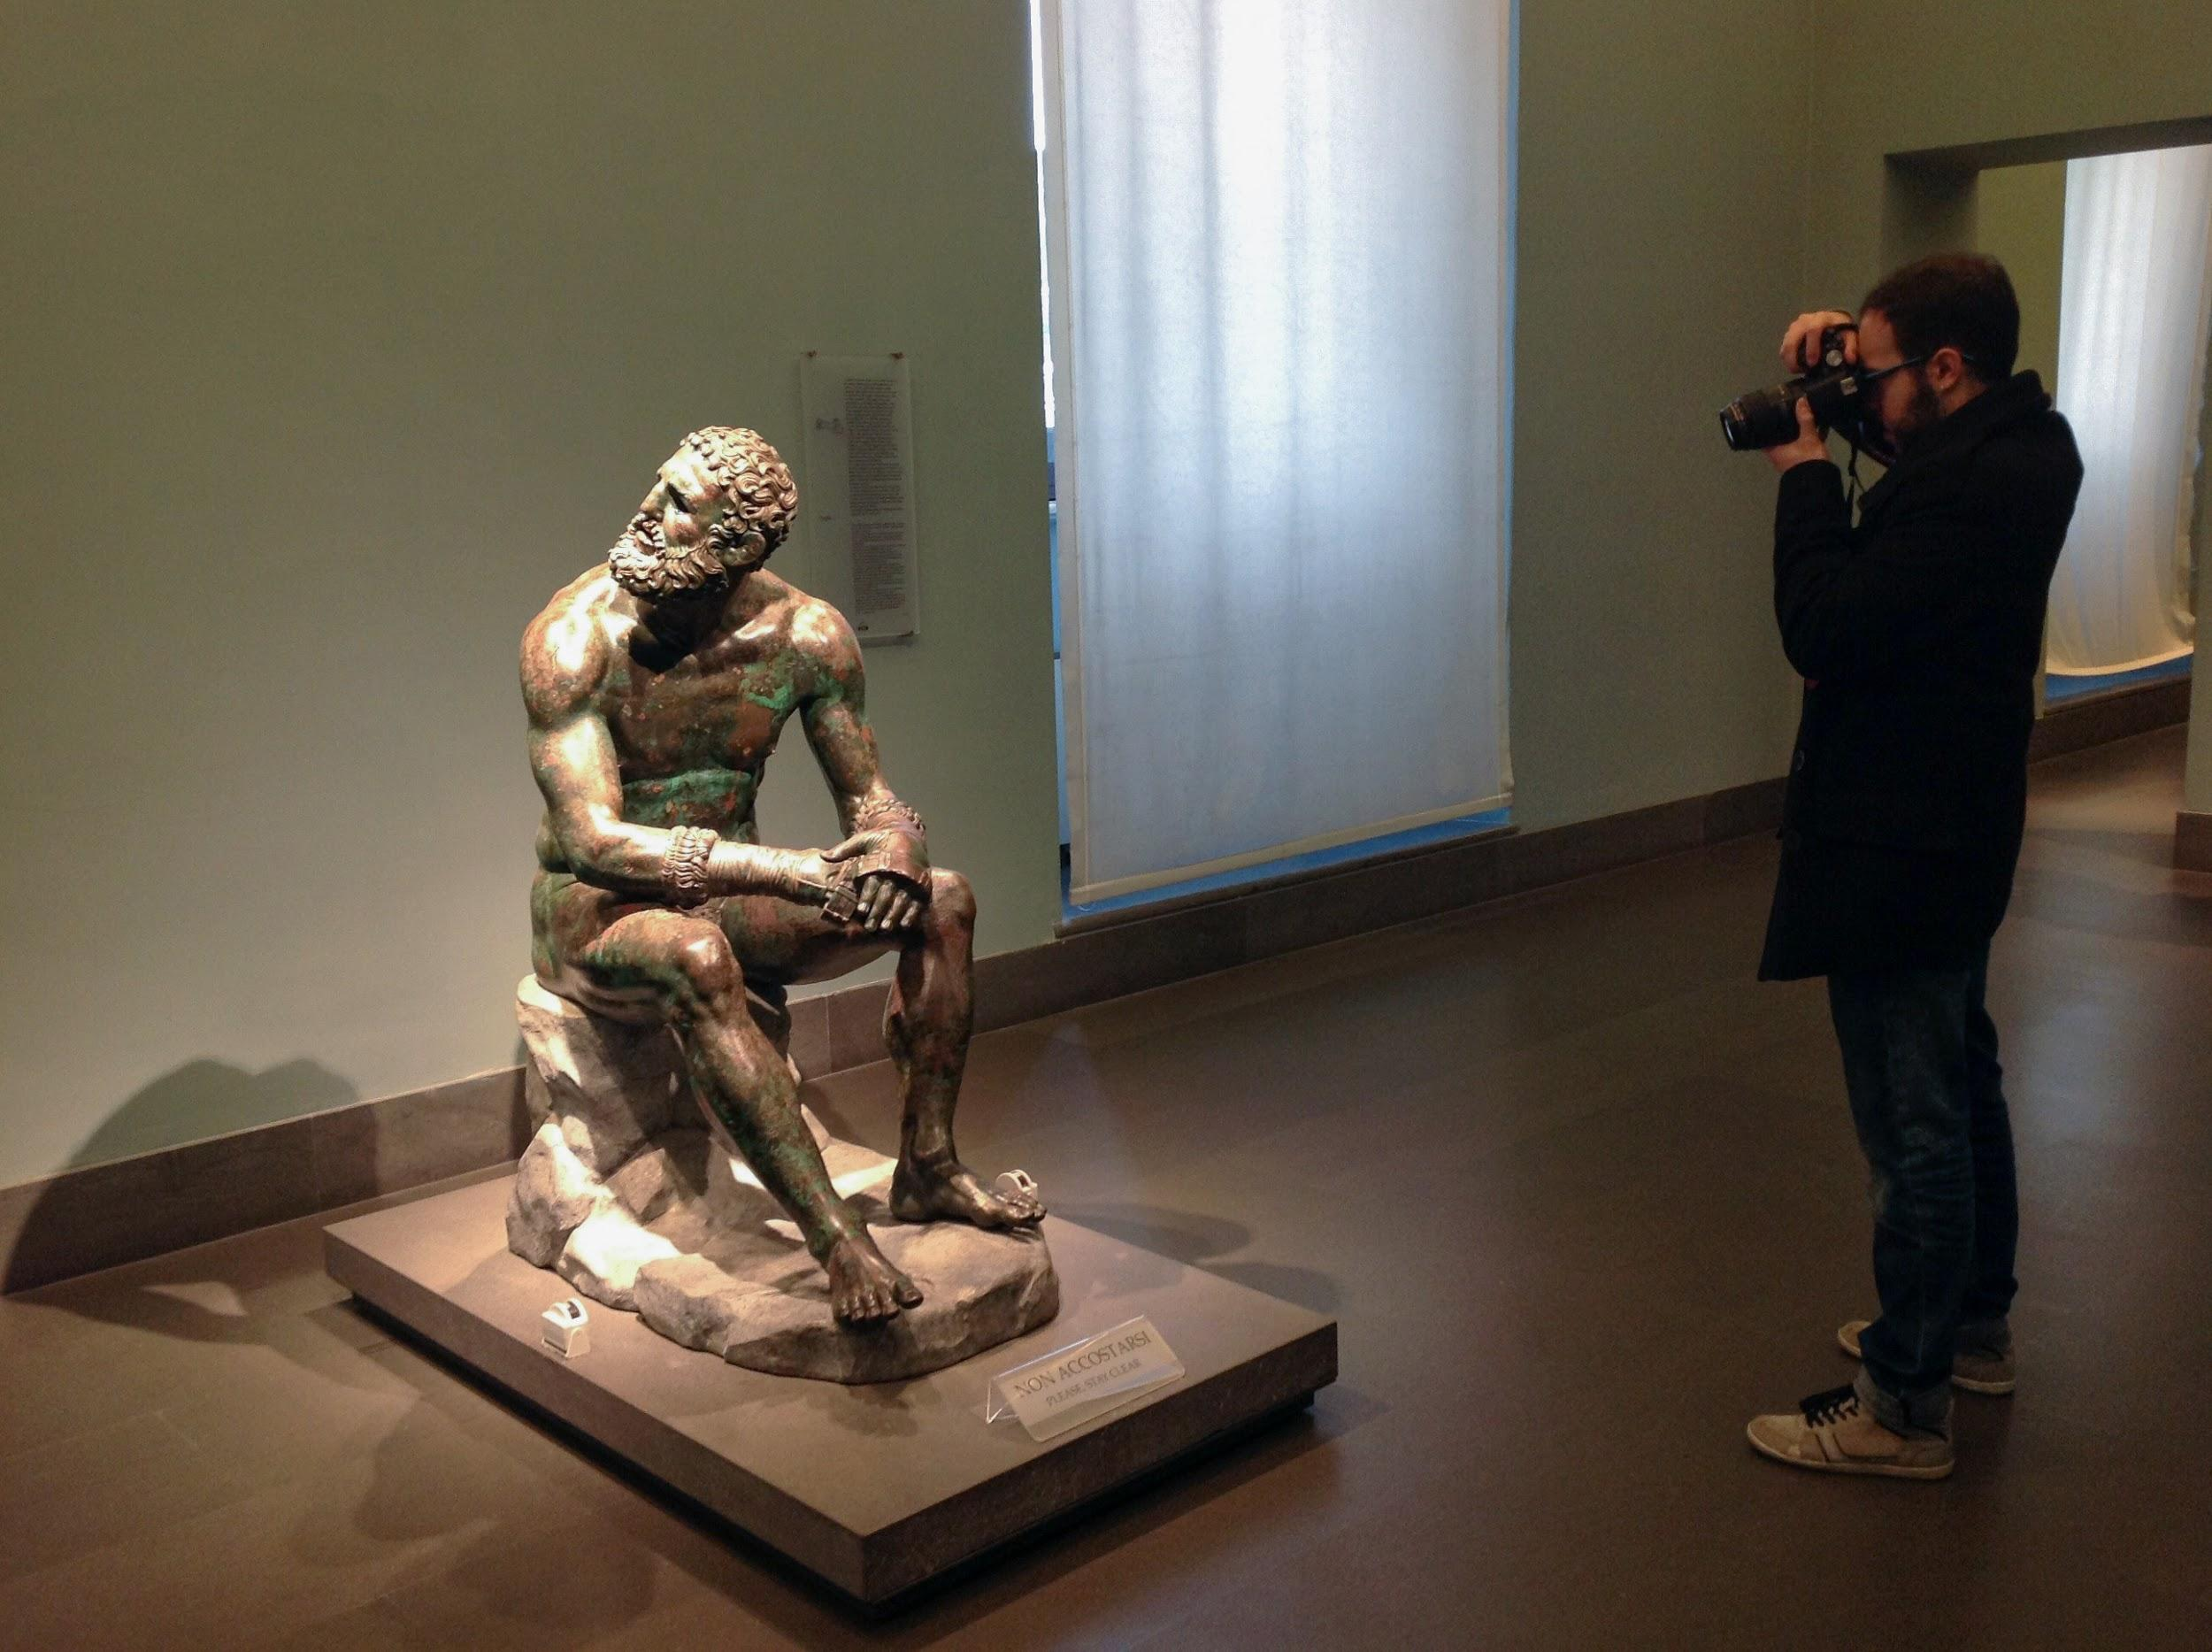 That's me face to face with the Boxer in the Museo Nazionale Romano - Palazzo Massimo alle Terme (Rome)